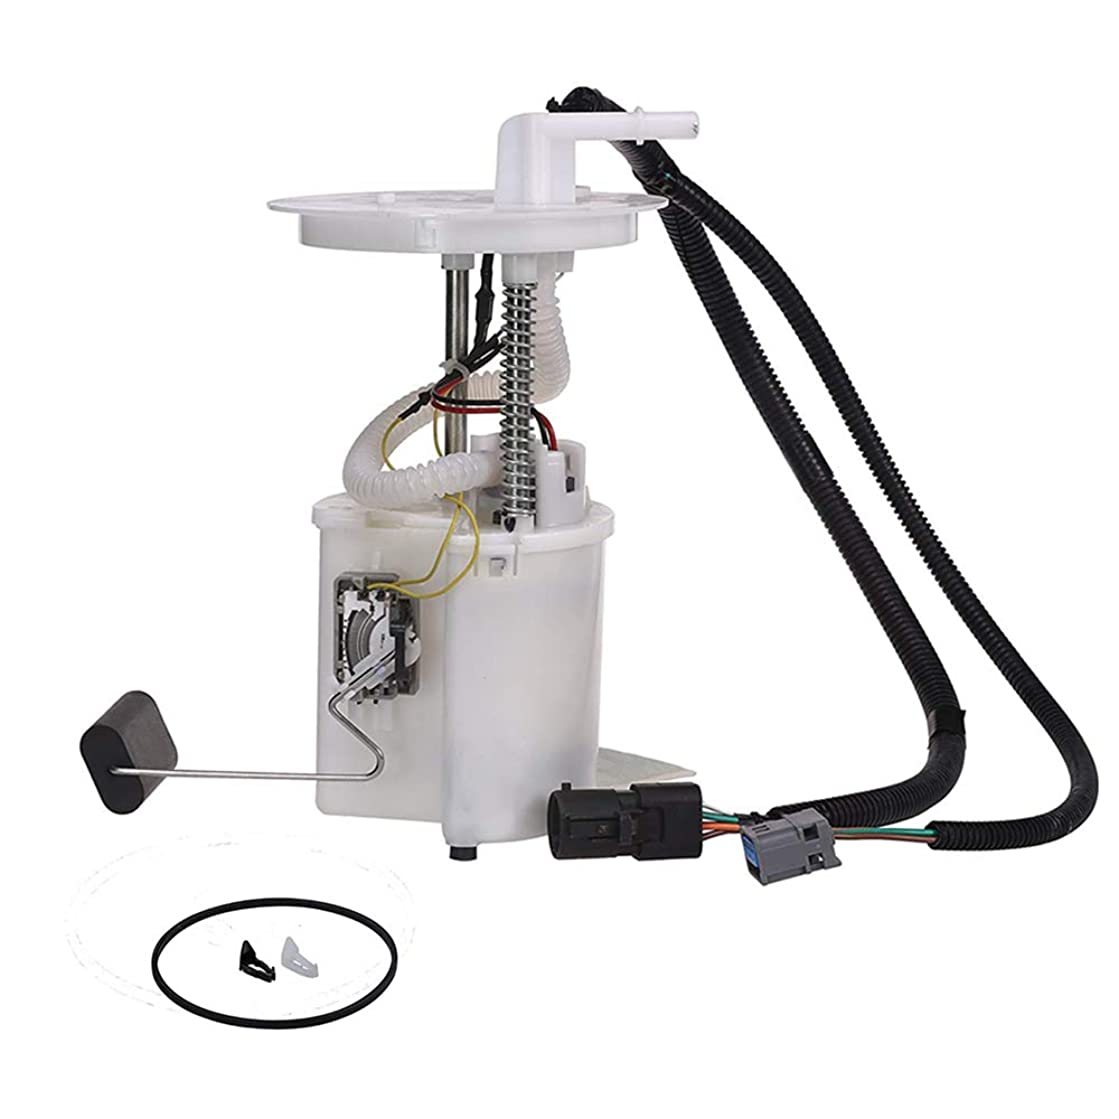 Fuel Pump A2313M Fuel Pump Module Assembly E2313M fits 2002 2003 Ford Taurus 3.0L-V6, 2002 2003 Mercury Sable 3.0L-V6